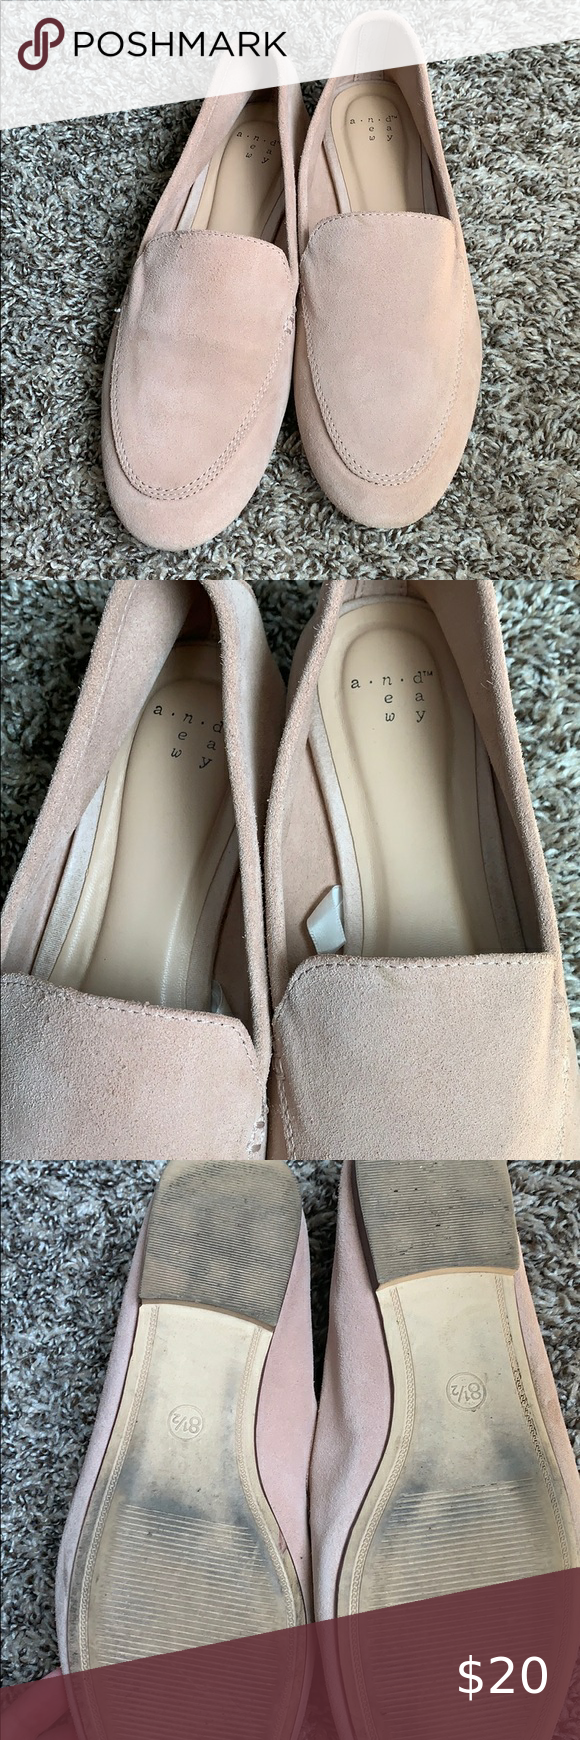 Blush Colored Loafers in 2020 | Loafers